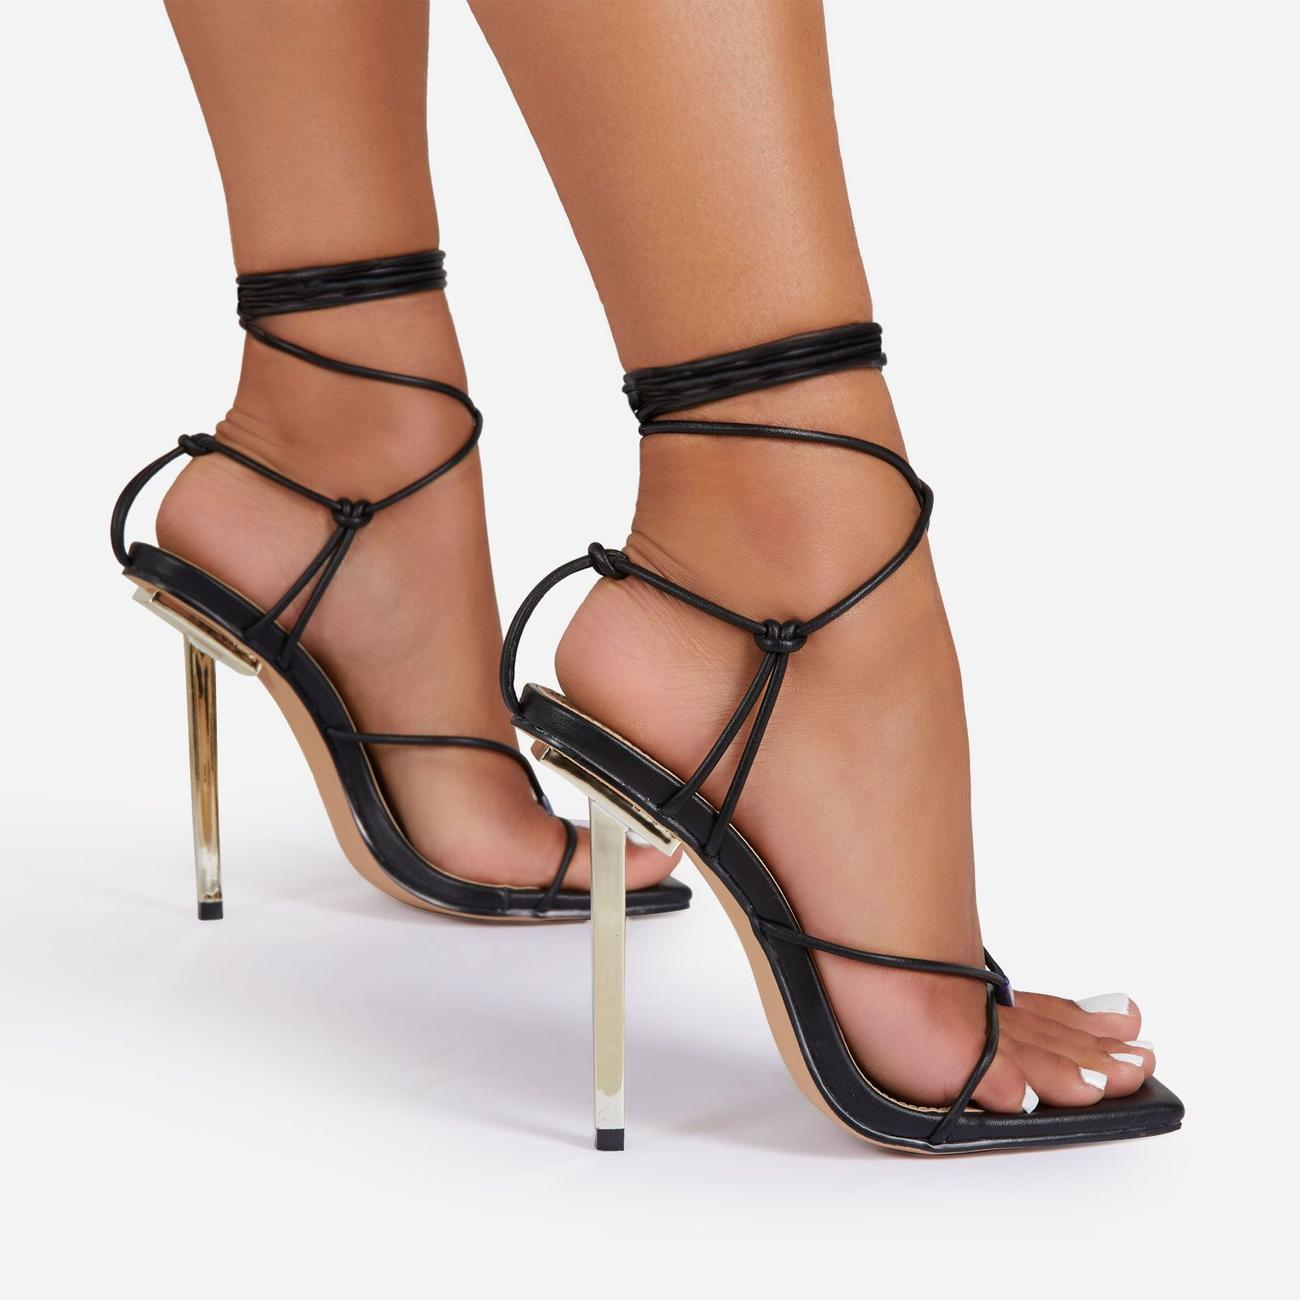 Raven Knotted Detail Lace Up Square Toe Metallic Heel In Black Faux Leather Image 2